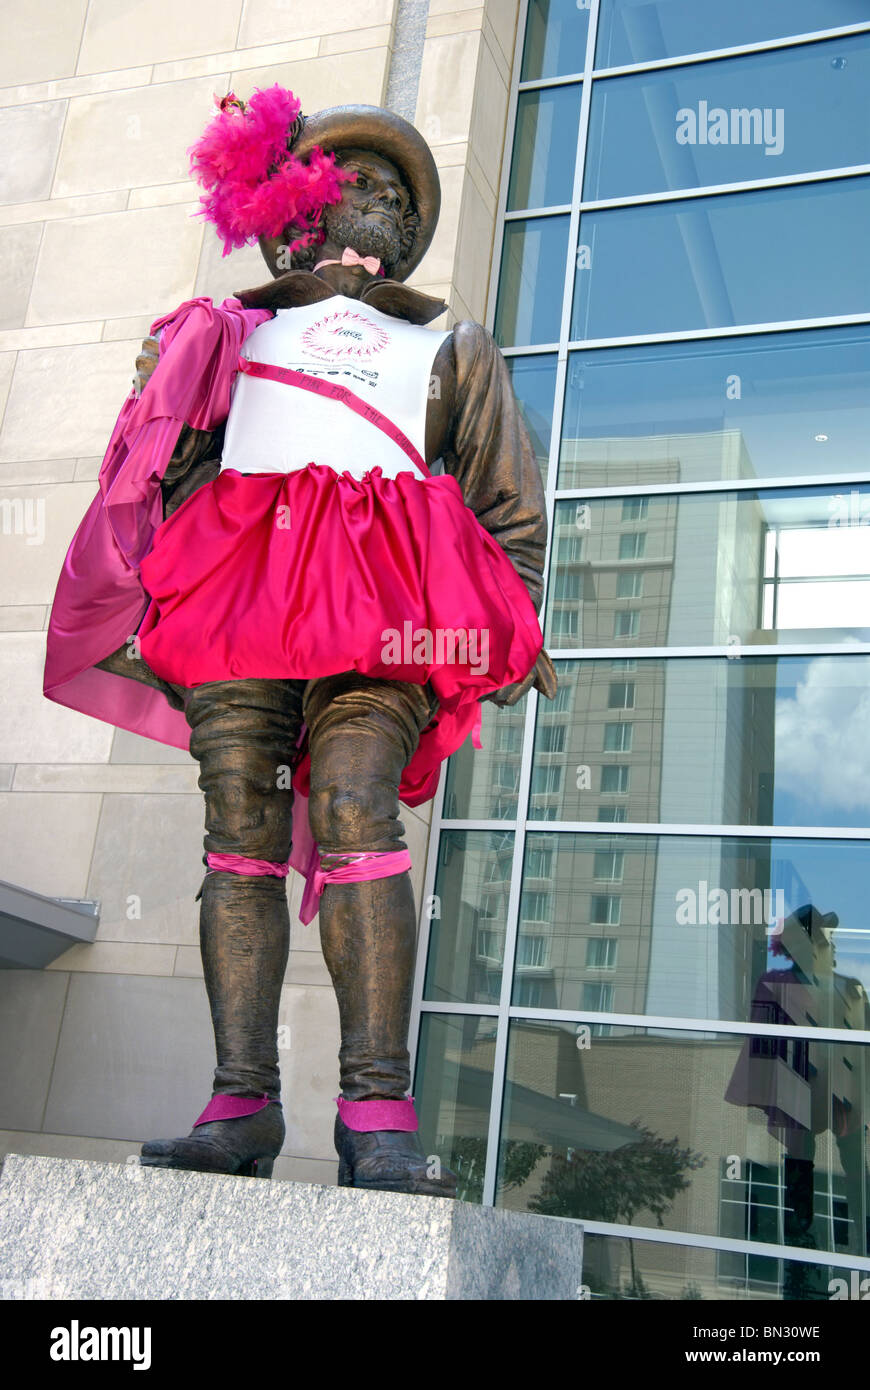 "Sir Walter Raleigh statue dressed in a pink outfit for the ""Race for the Cure 2010"" fundraising event week in Raleigh, Stock Photo"